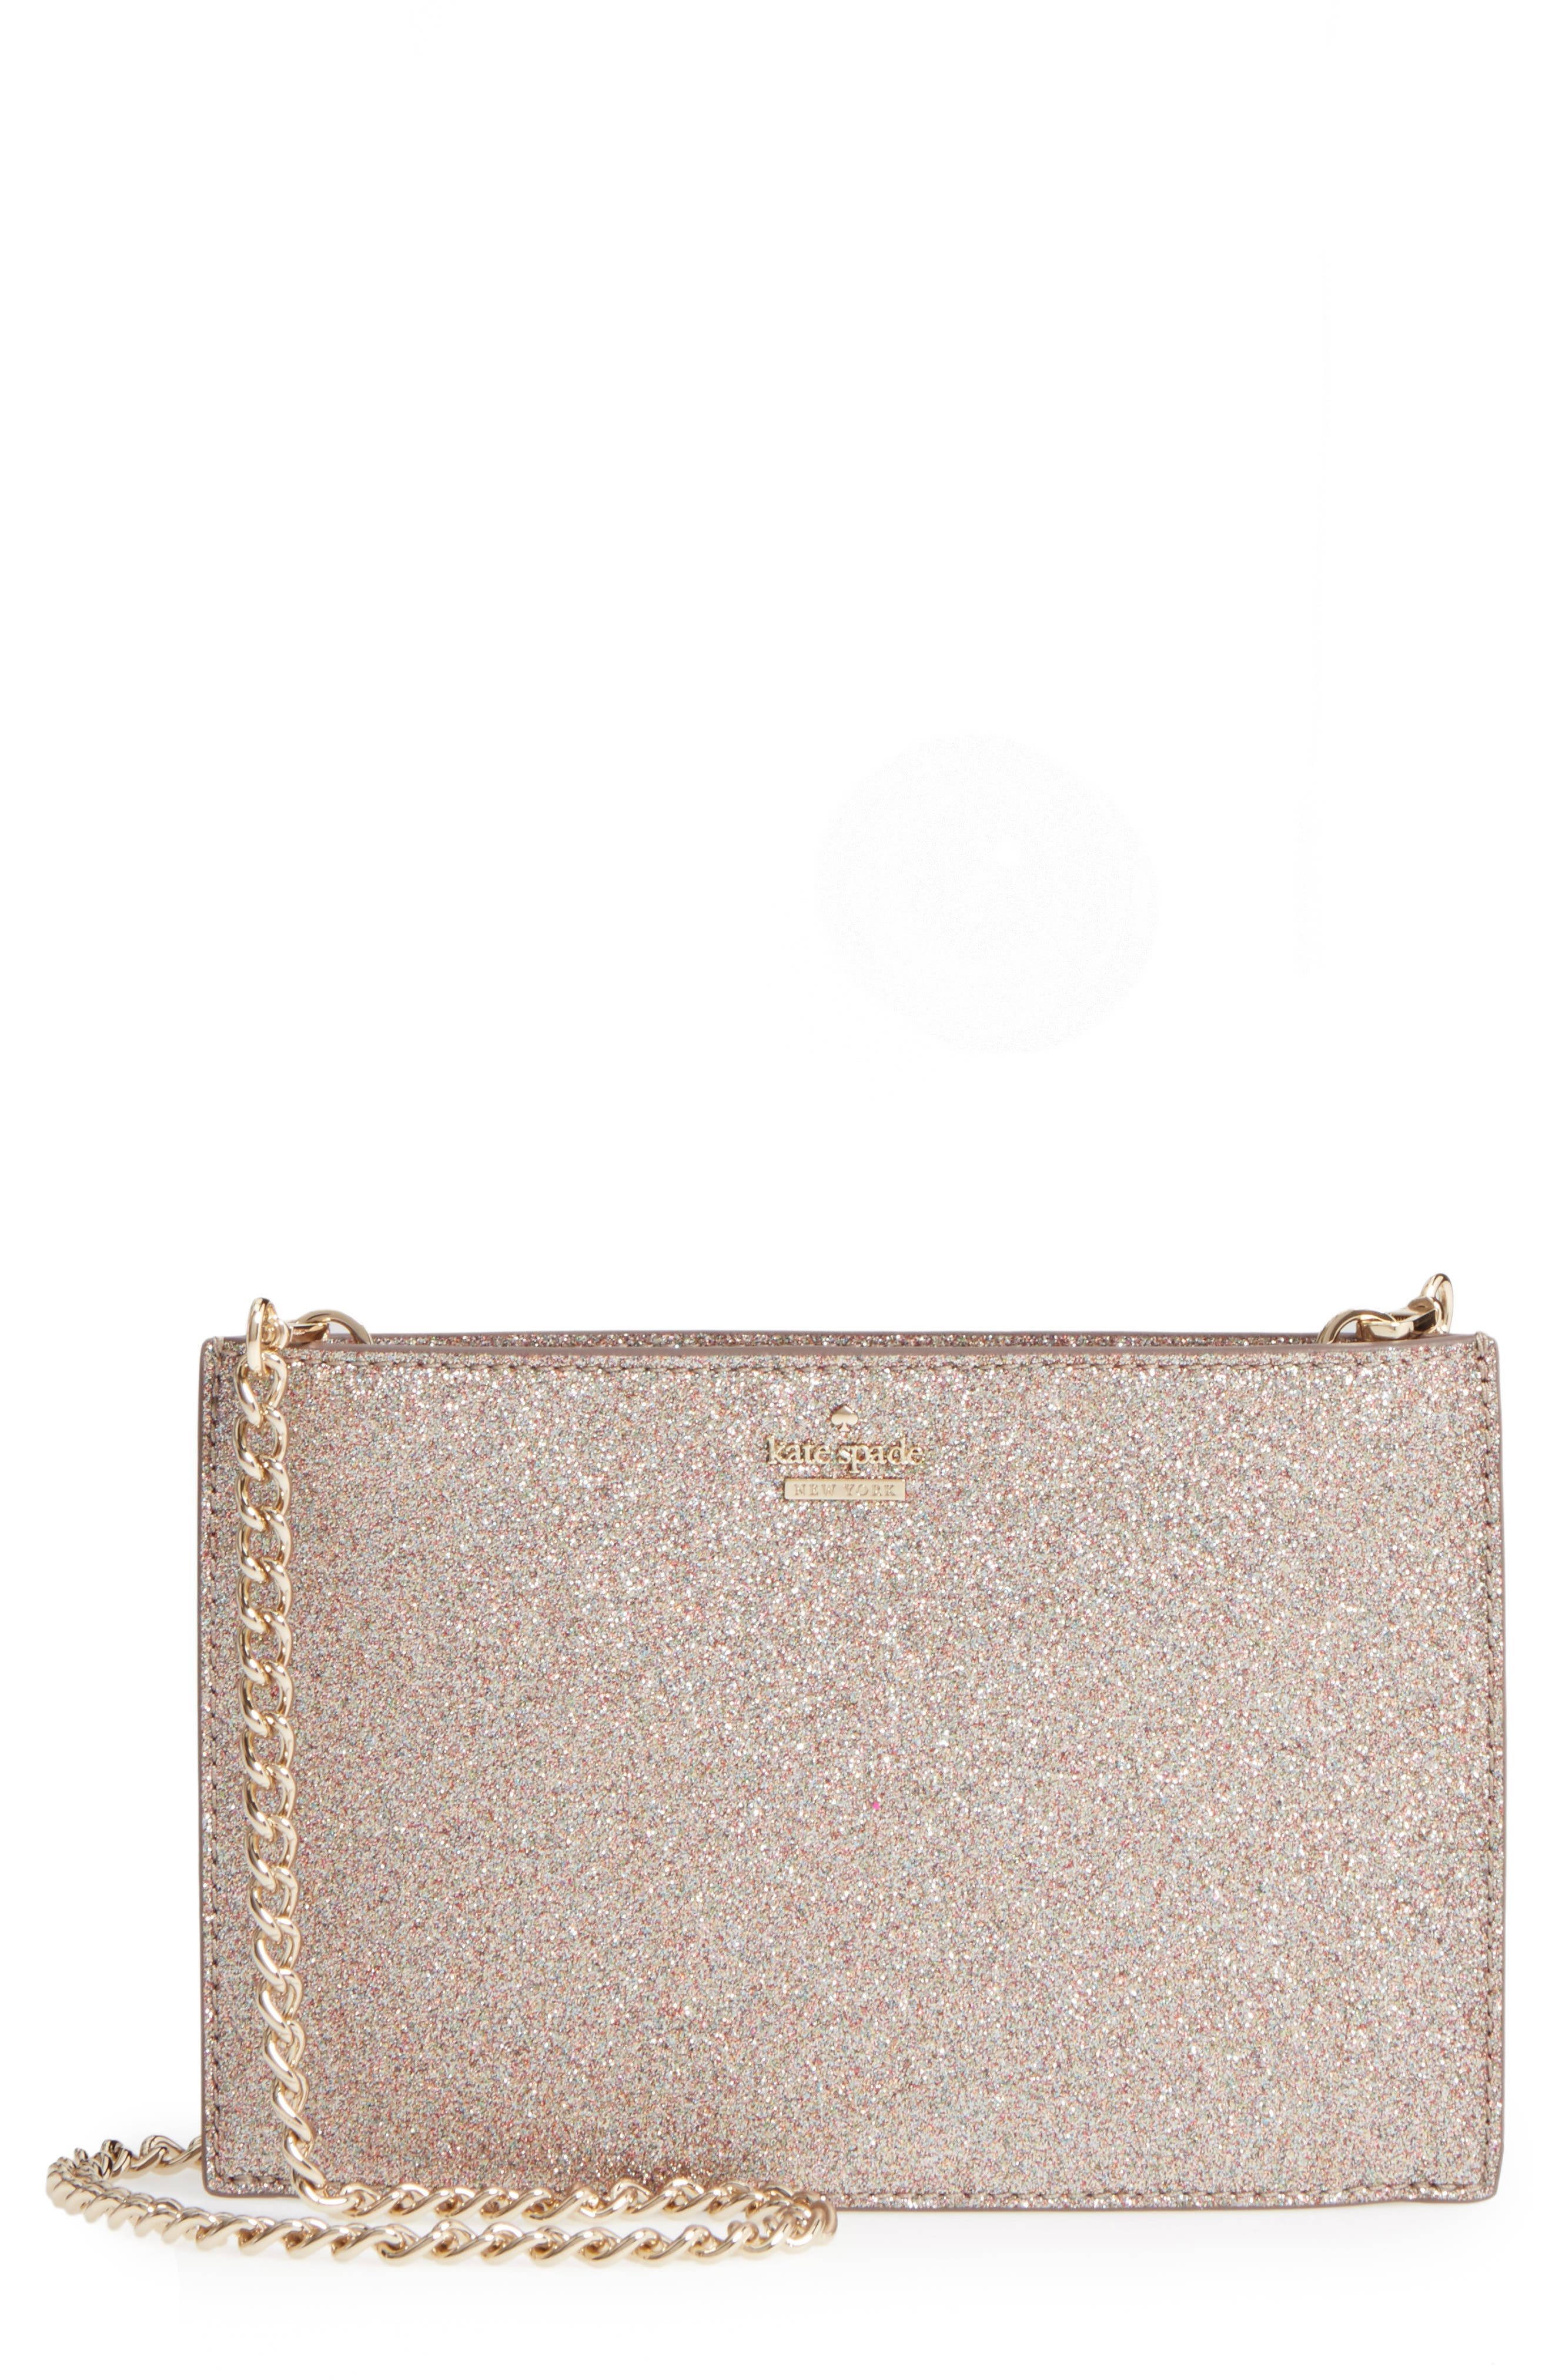 kate spade new york burgess court – mini sima glitter shoulder bag